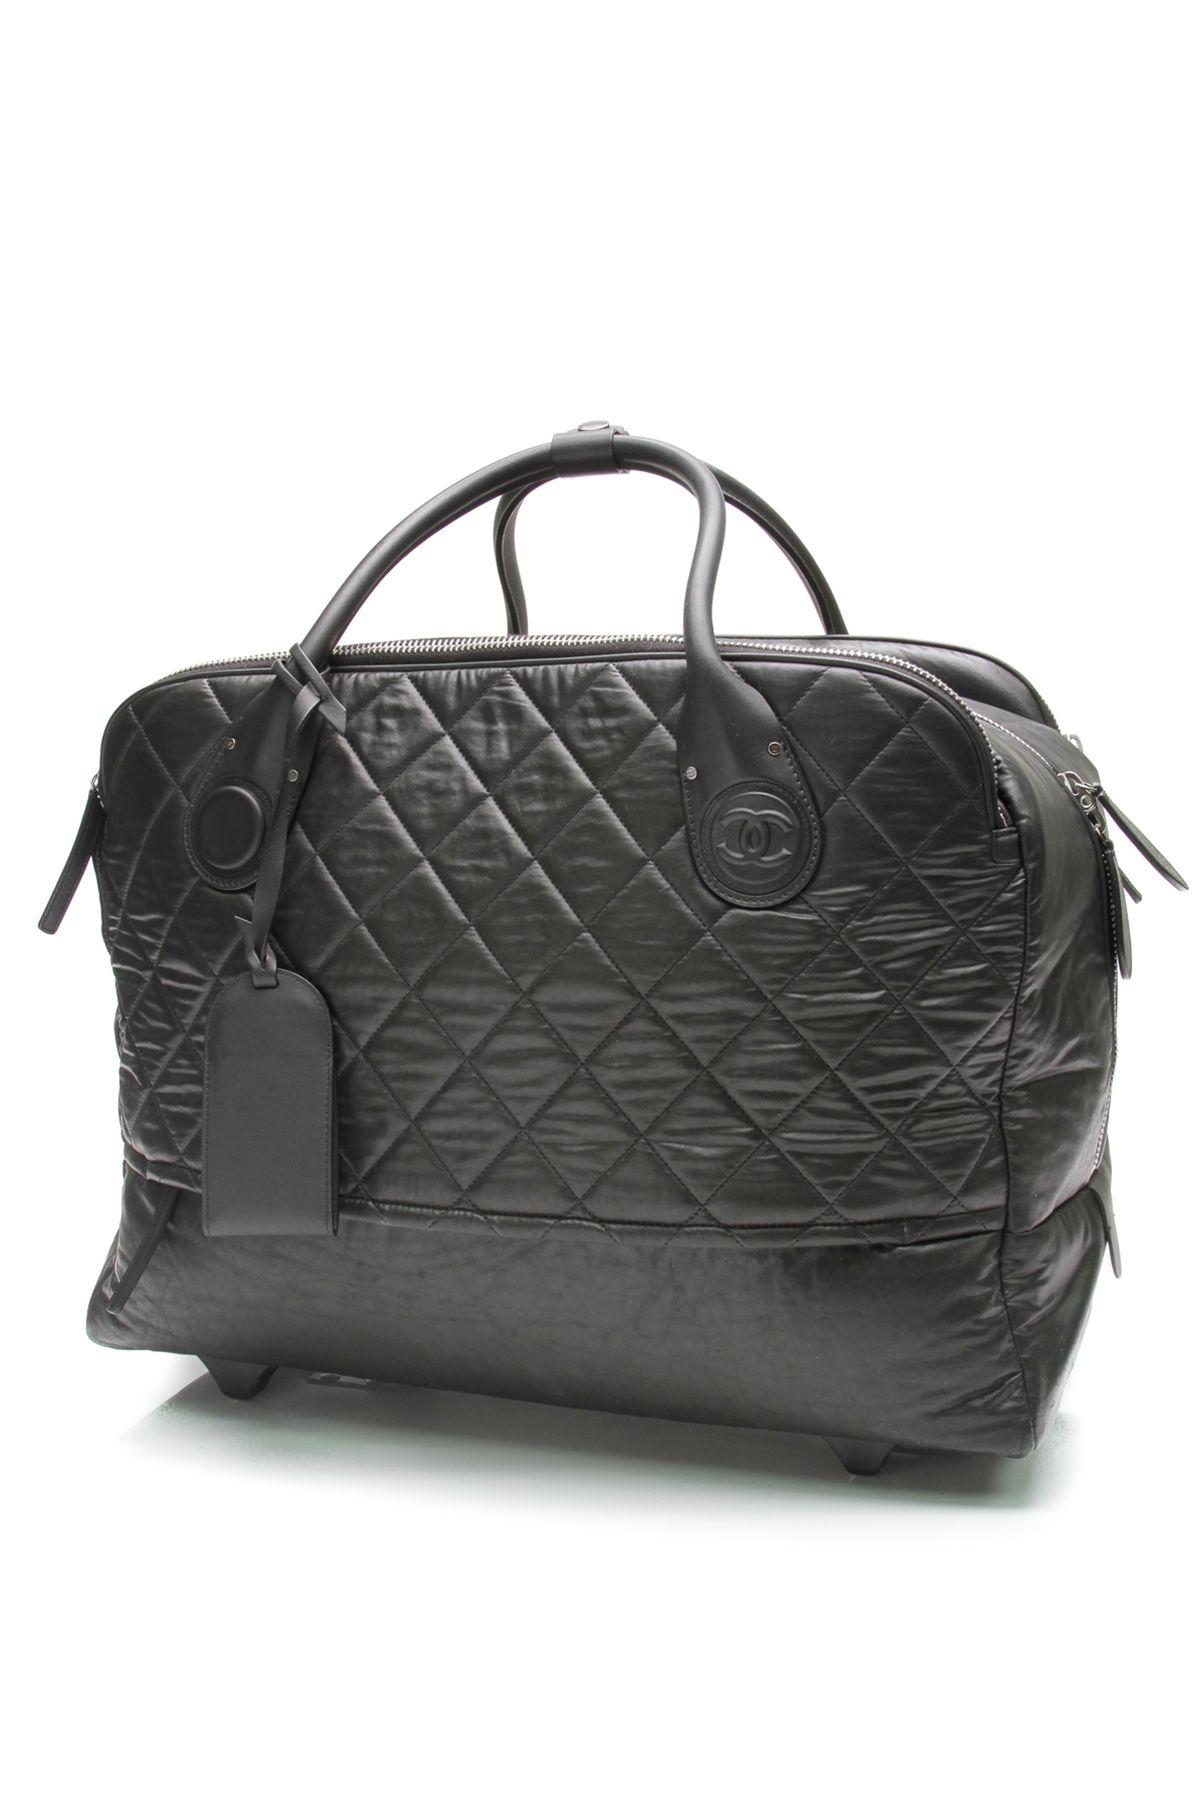 288a639492659a Chanel quilted nylon rolling luggage (our price: $2,519.99 ...